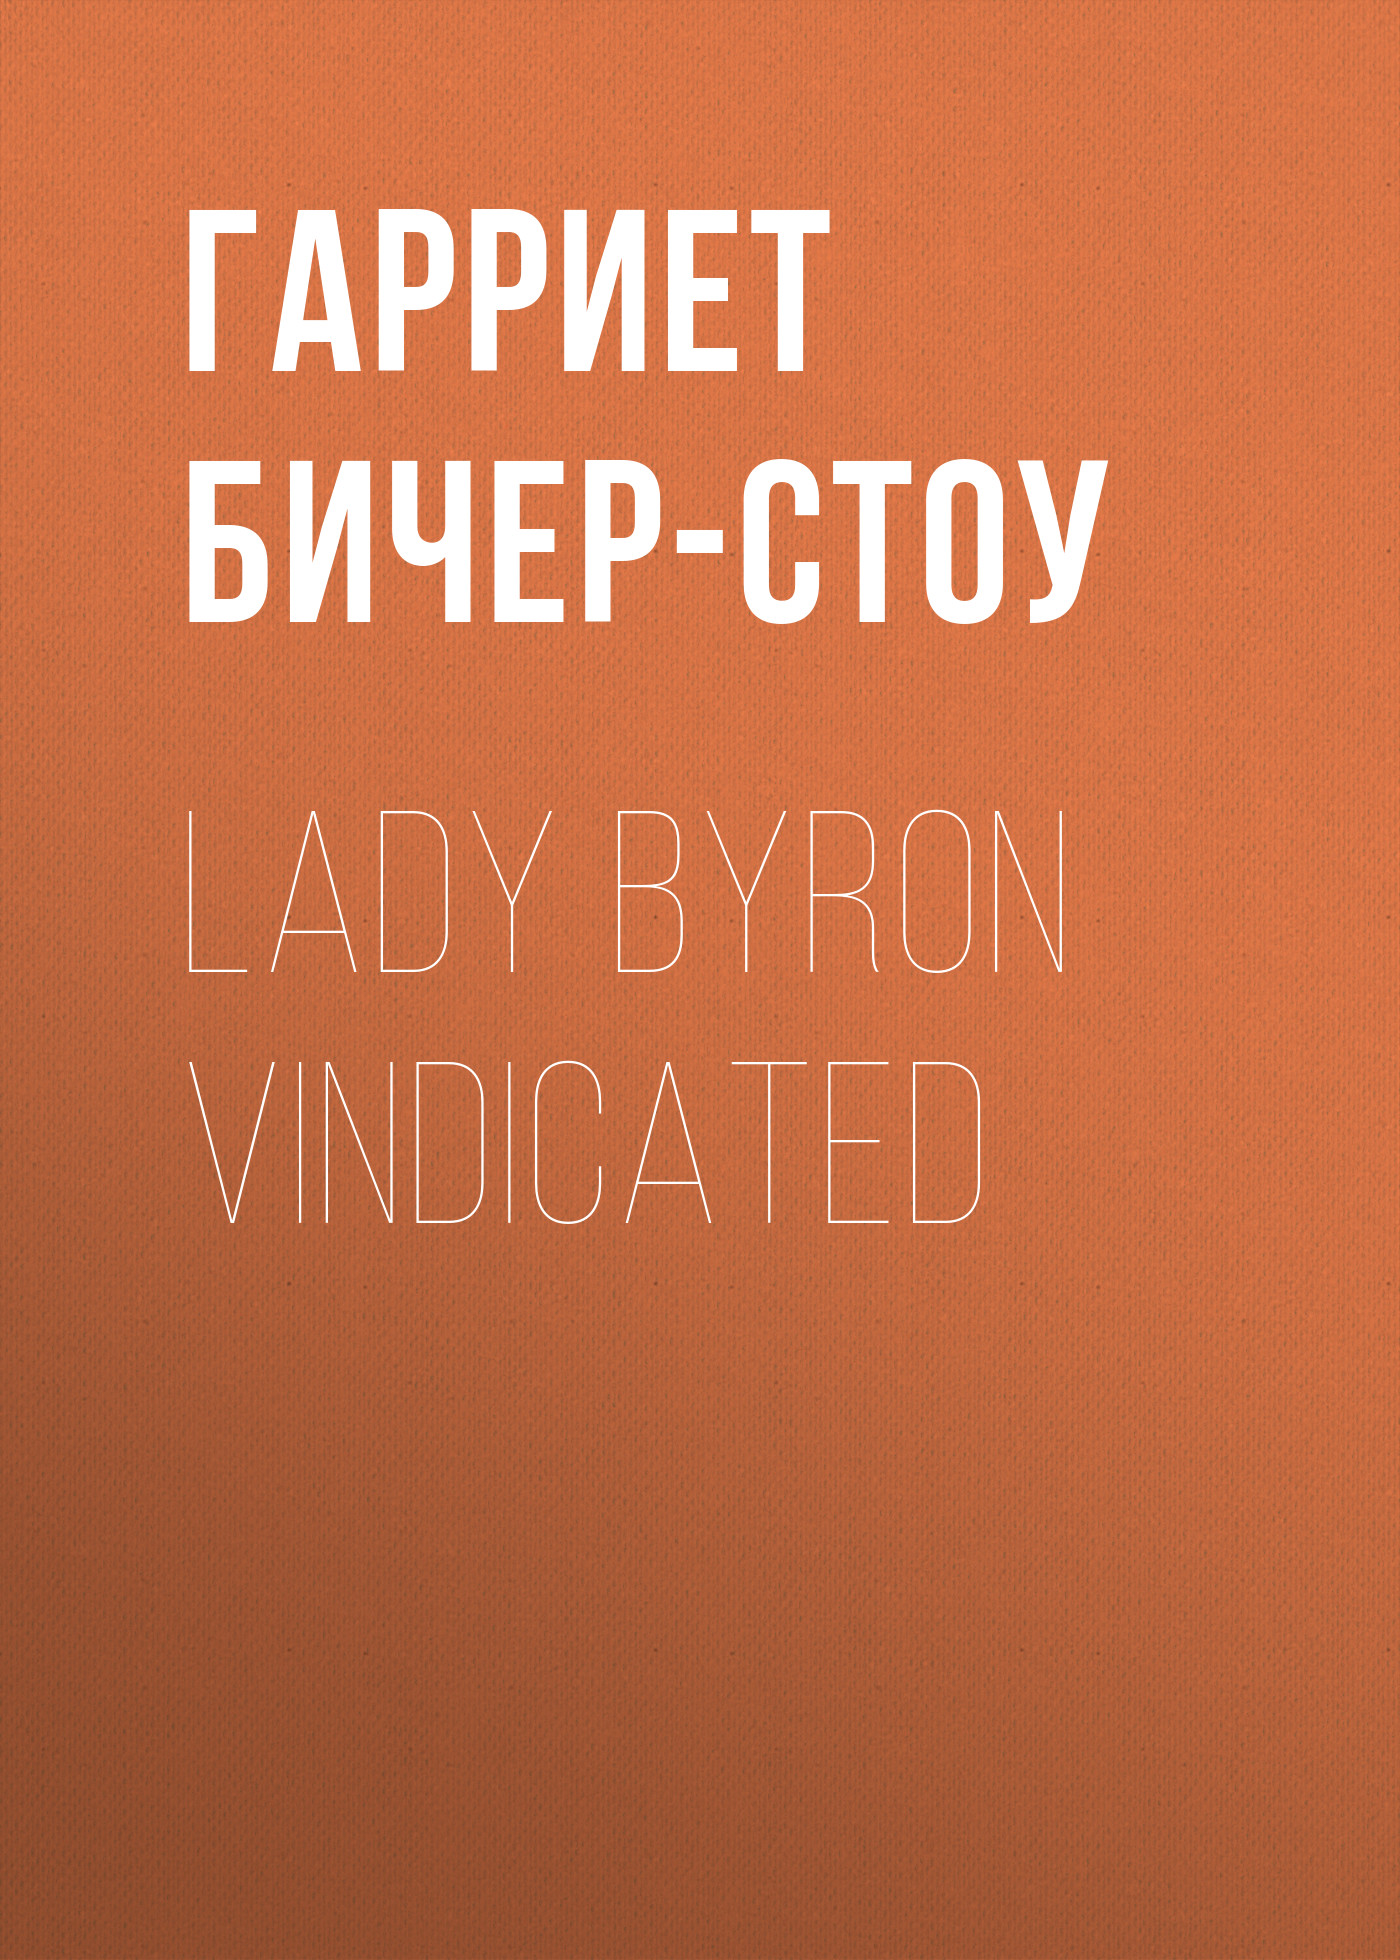 Lady Byron Vindicated – Гарриет Бичер-Стоу